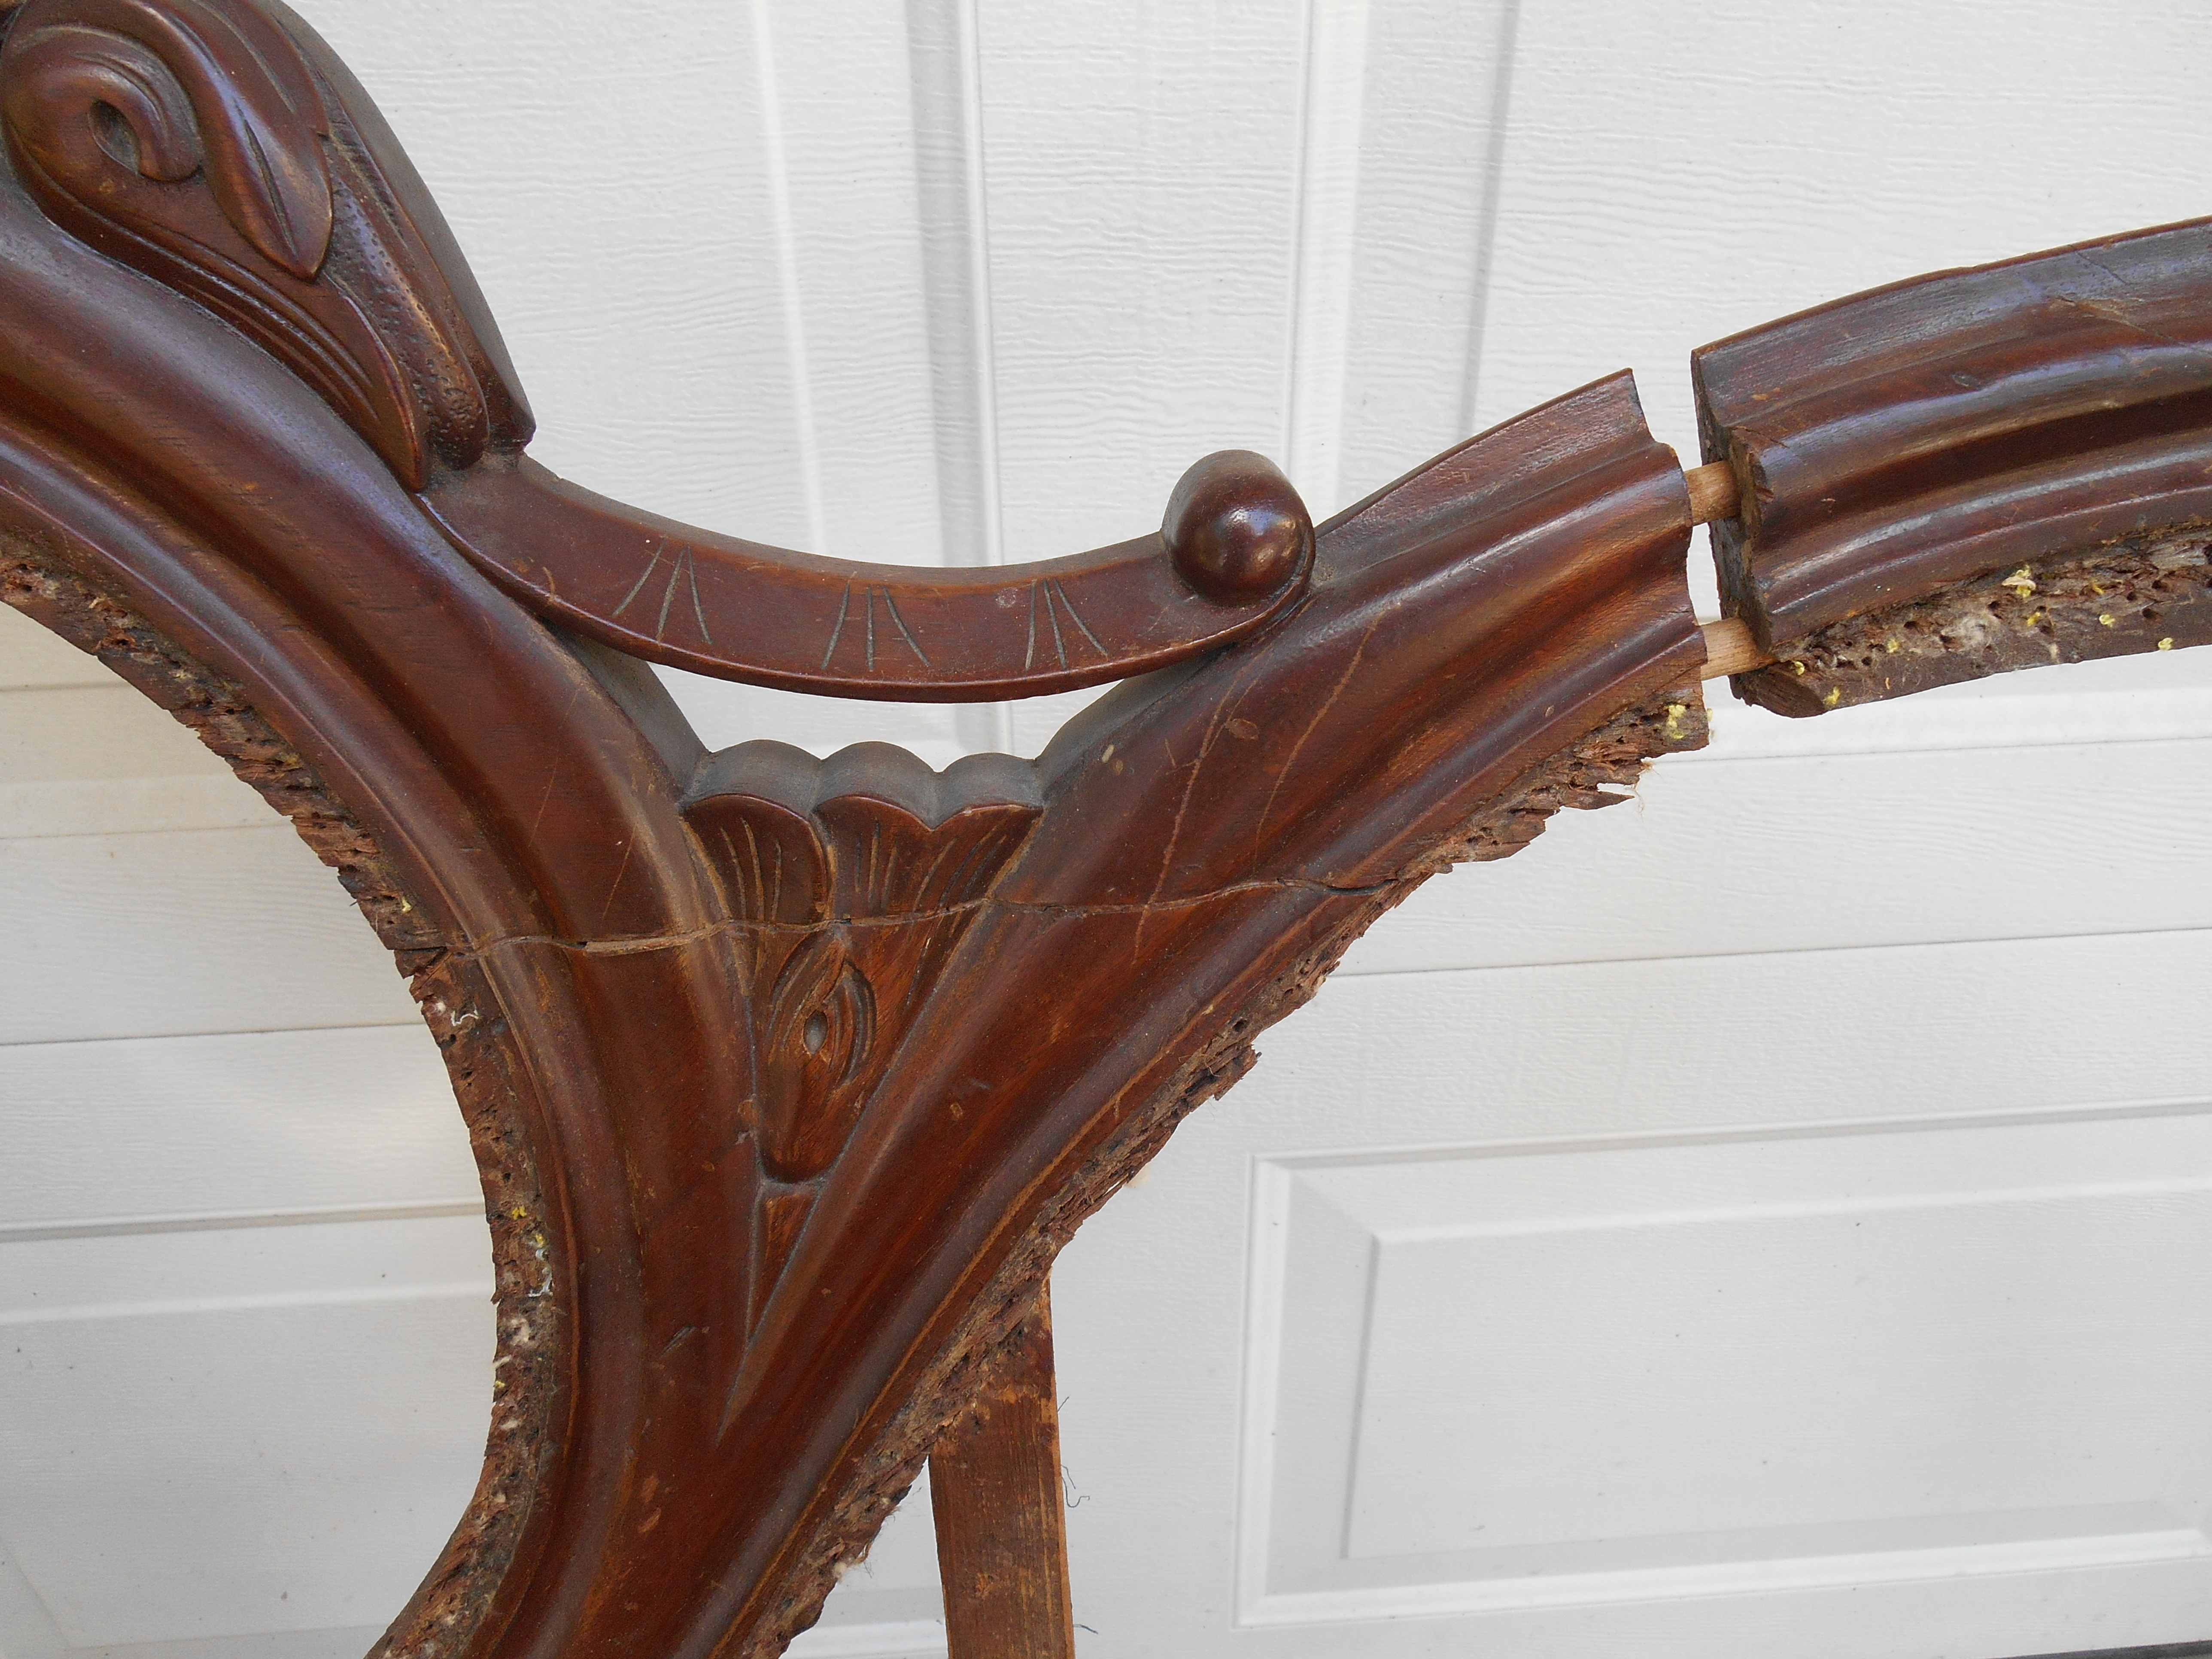 Furniture Is Ladd And Rose S Pion They Have A Long History Of Restoring Fine Antiques In 1988 Upholstery Designs Opened Charleston Sc